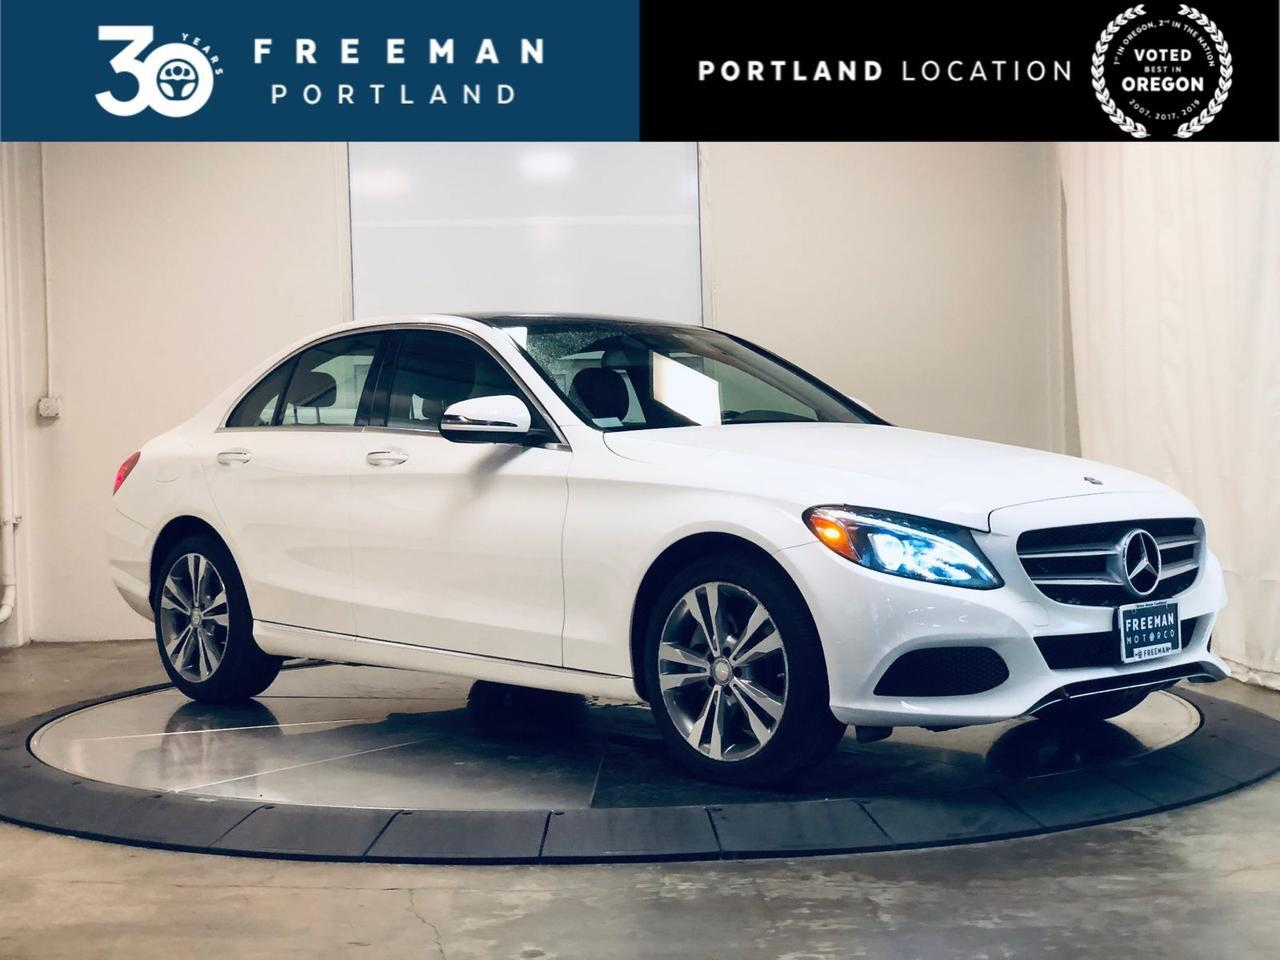 2017 Mercedes-Benz C 300 4MATIC Panorama Blind Spot Assist KeyGO 11k Miles Portland OR